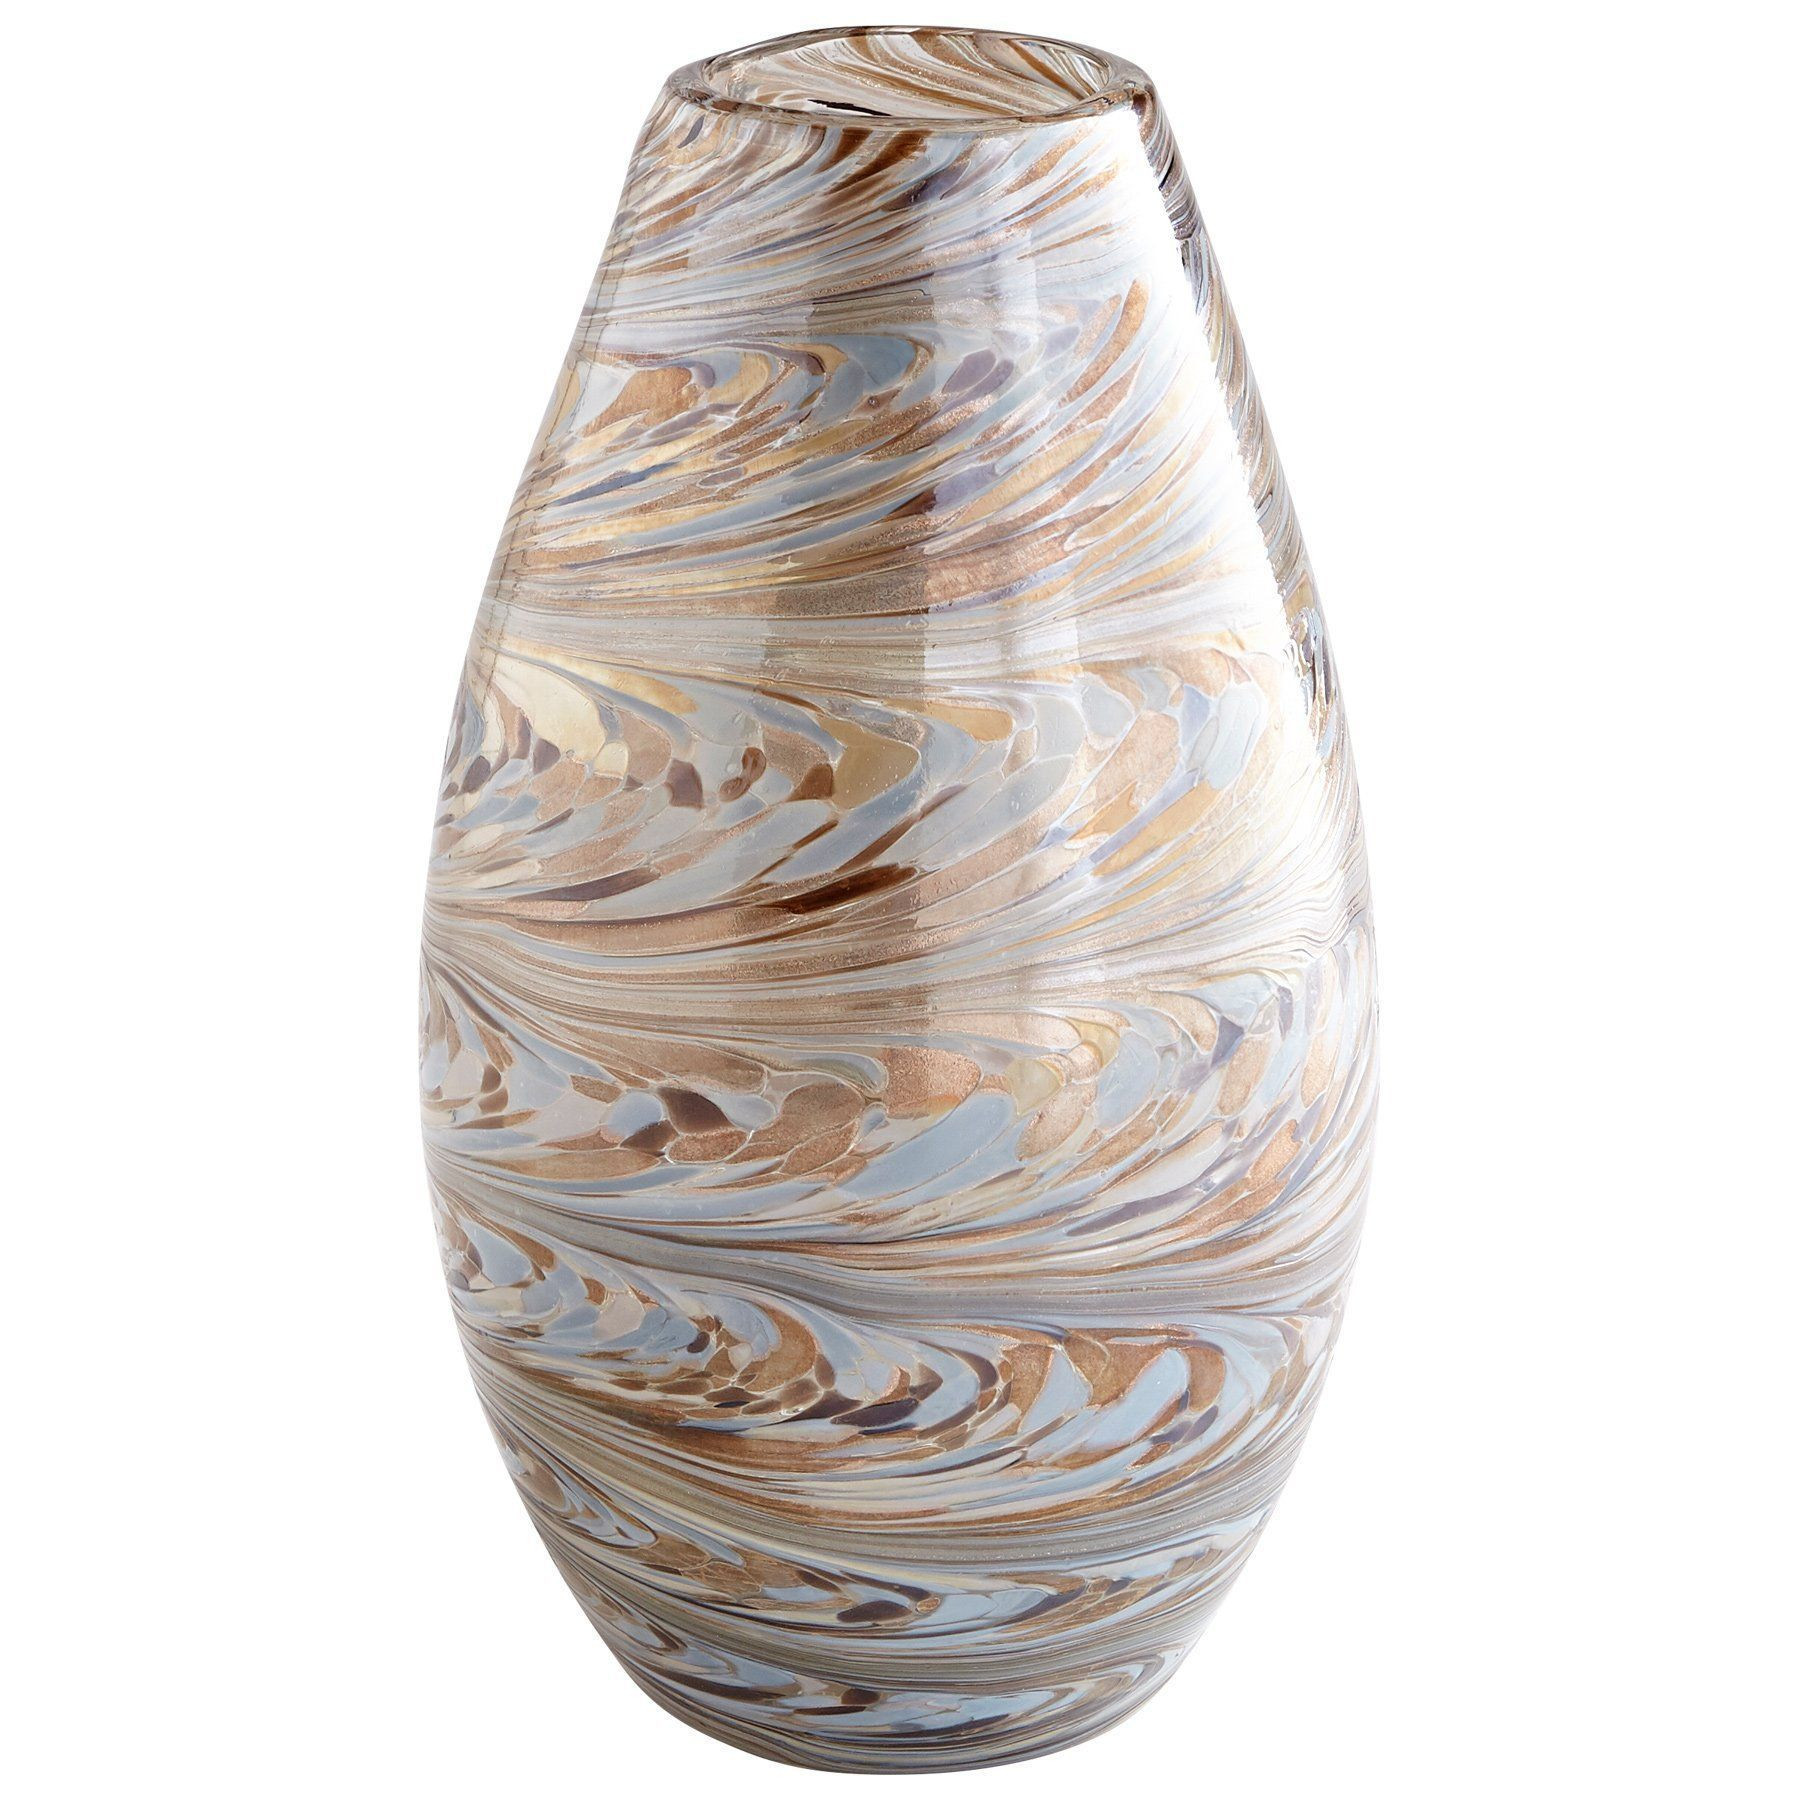 wholesale glass vases los angeles ca of 44 gold and silver vase the weekly world with caravelas small gold silver metallic sand swirl art glass vase by